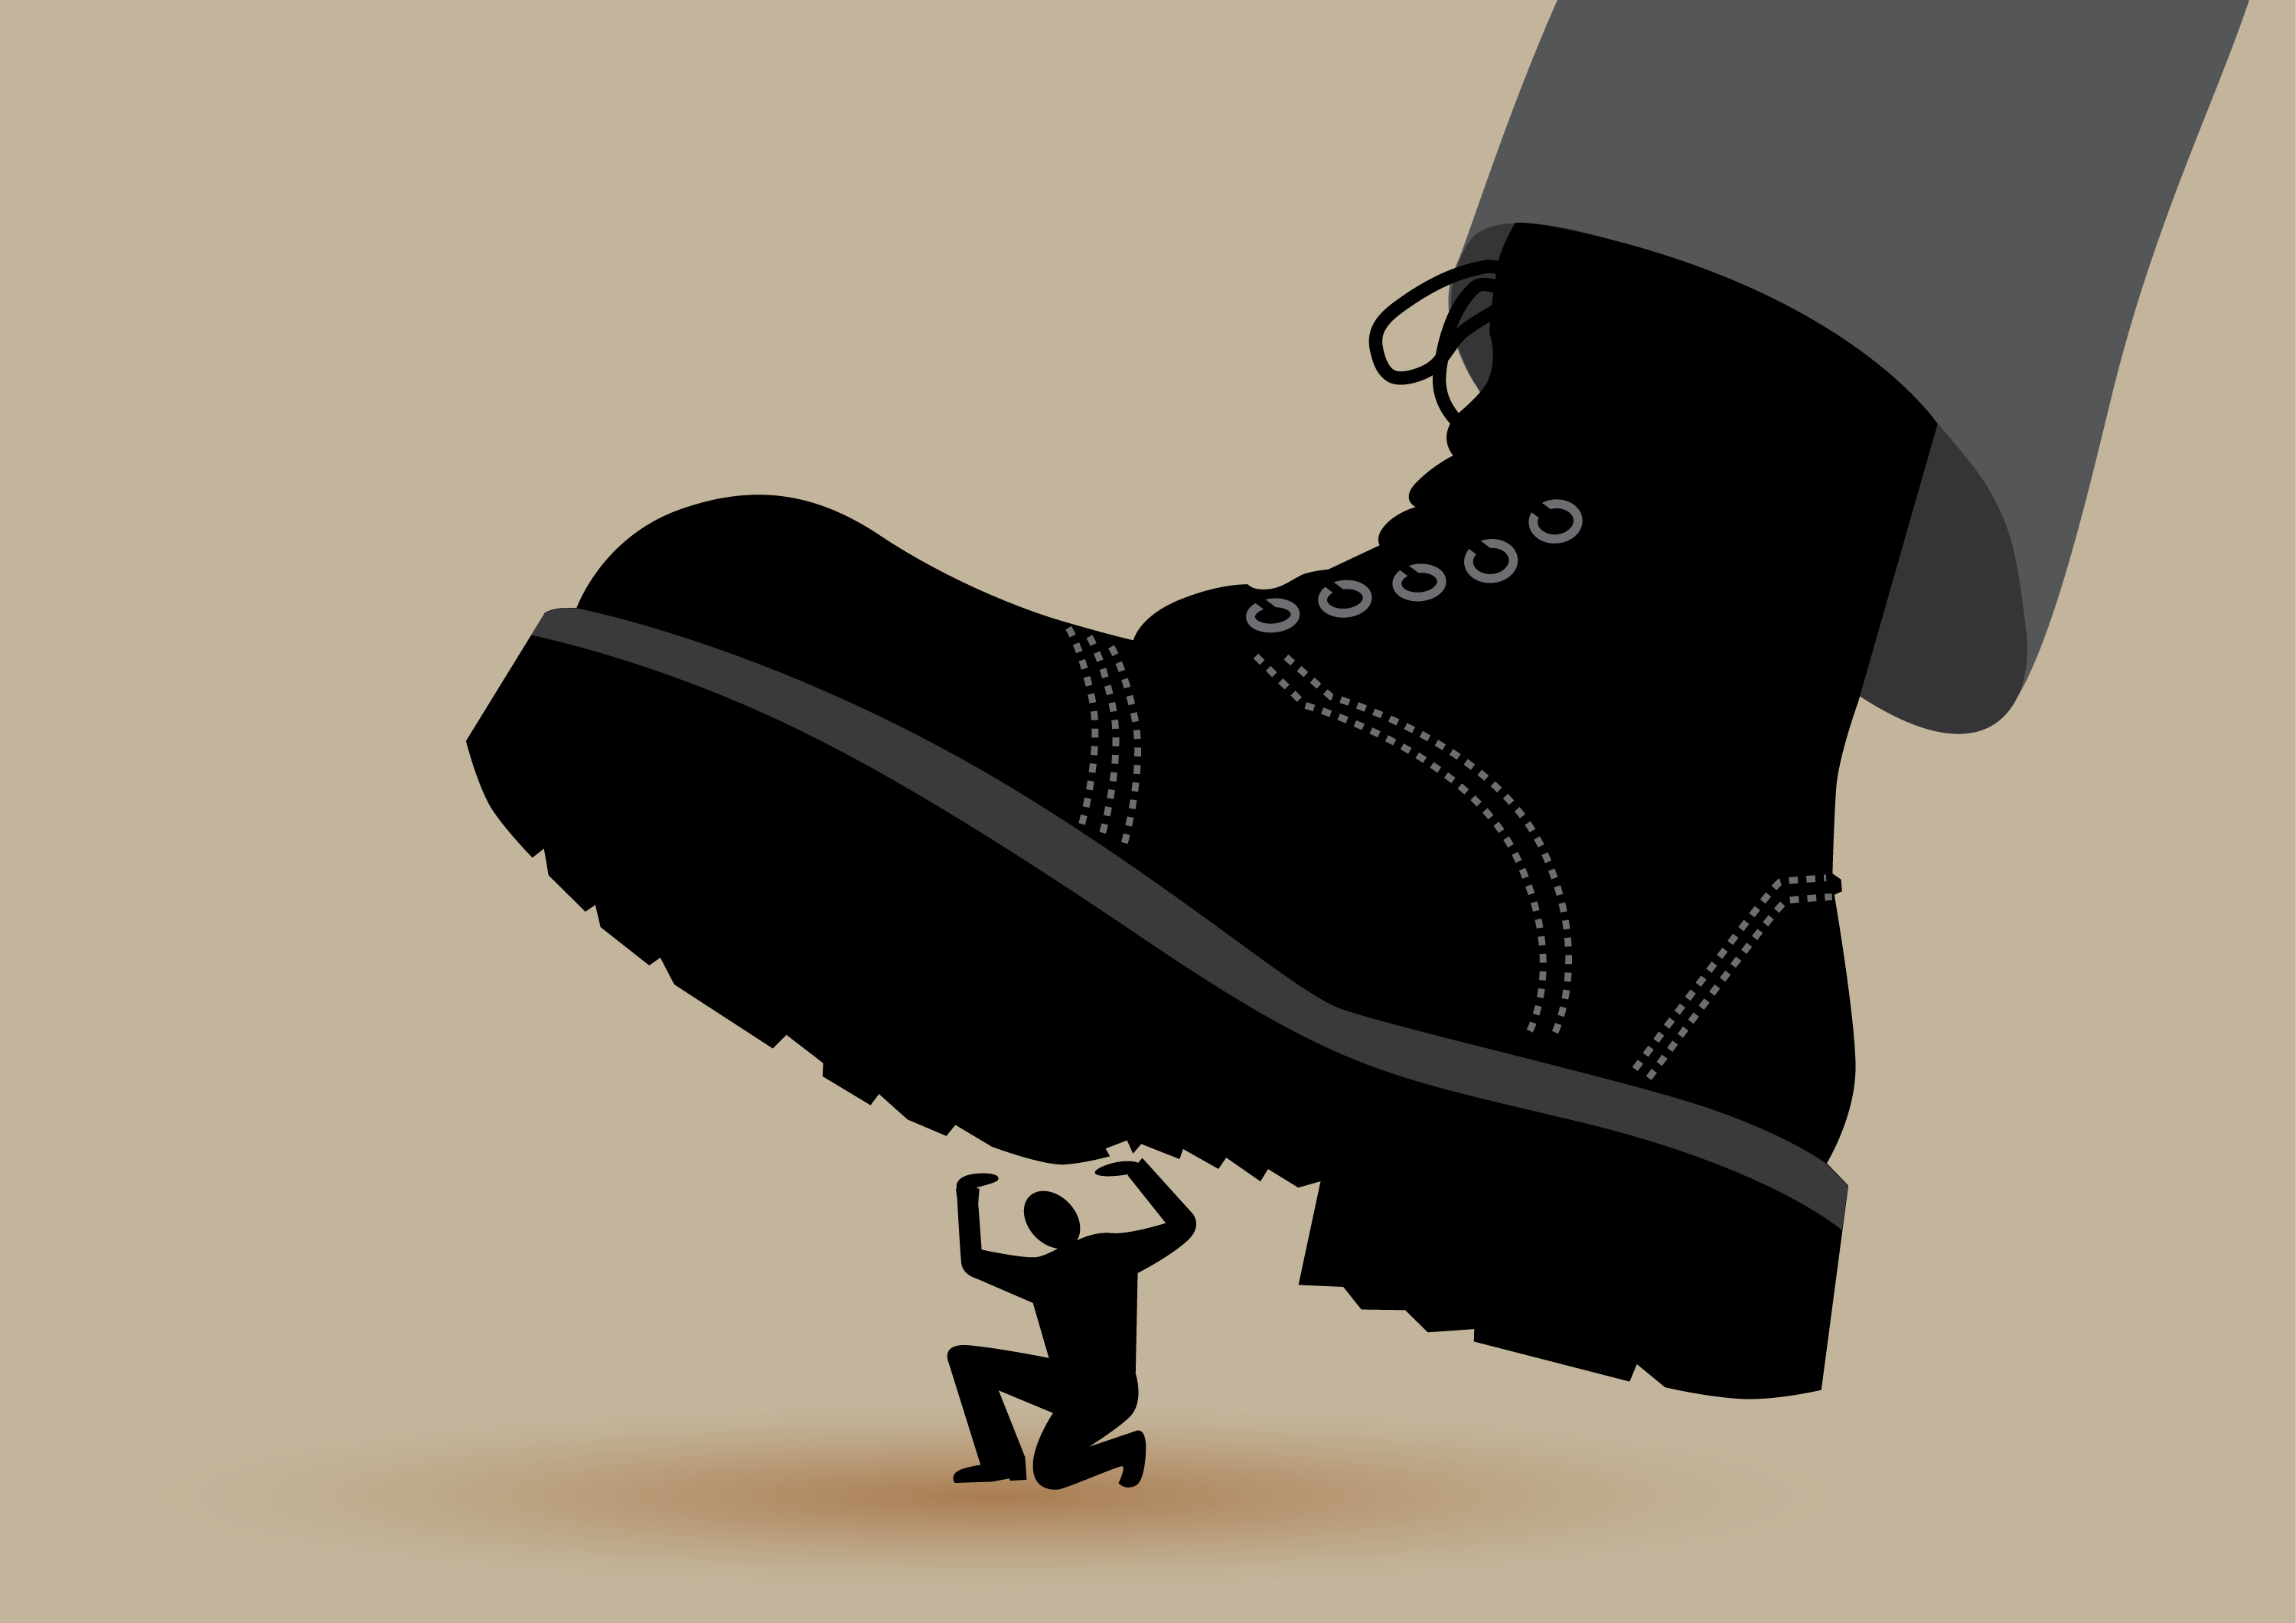 A giant boot crushing a tiny man